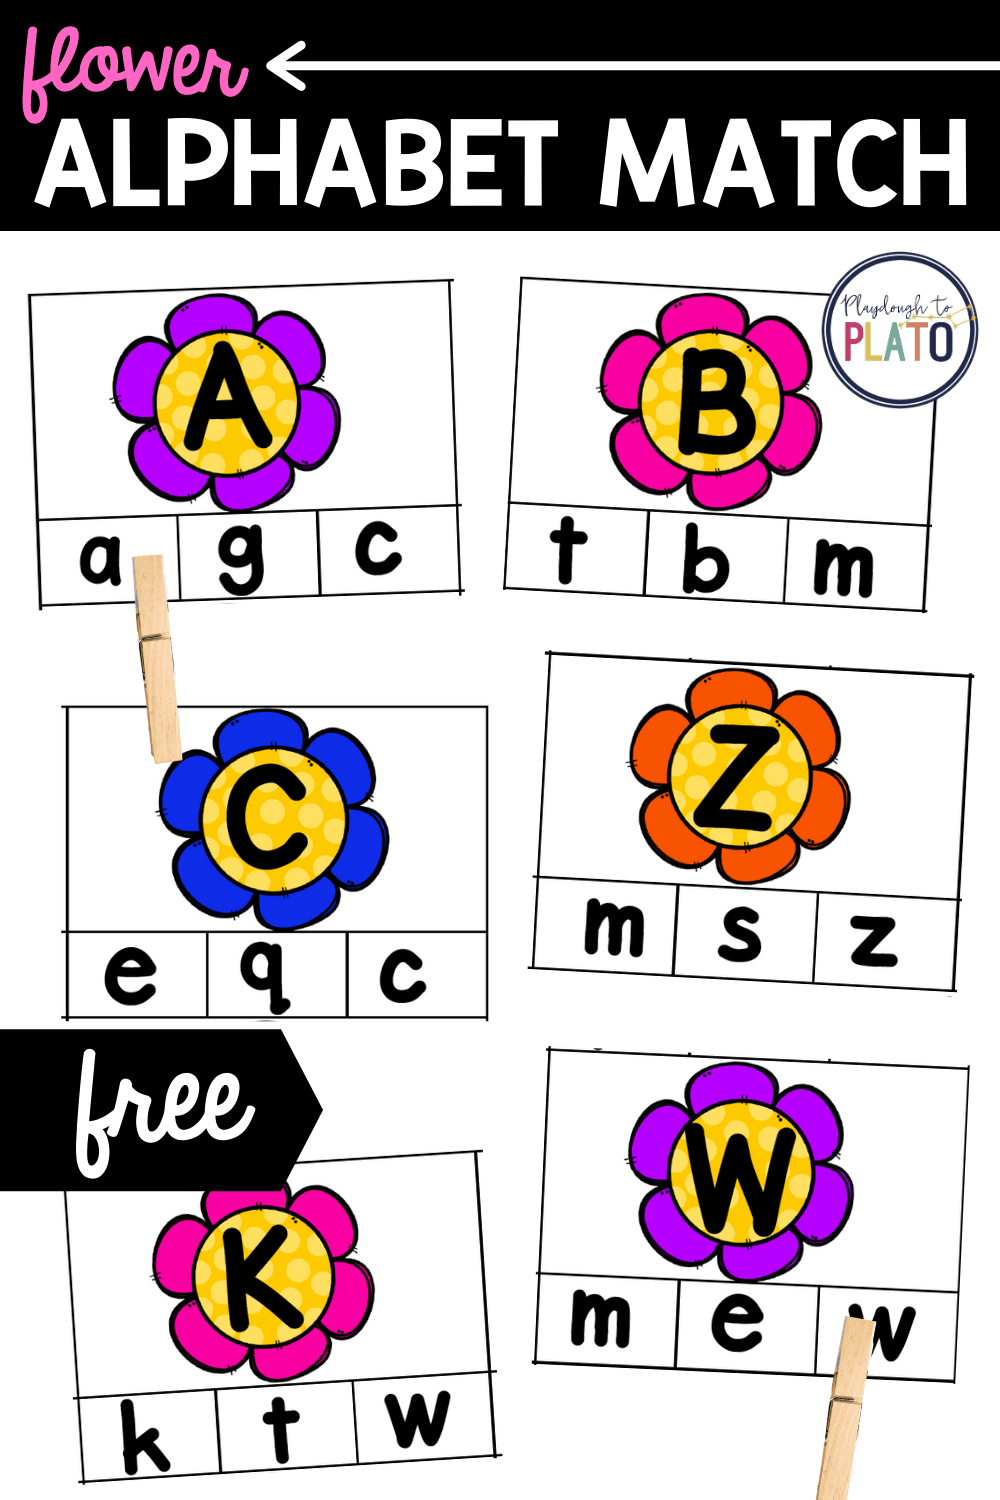 Flower Alphabet Match